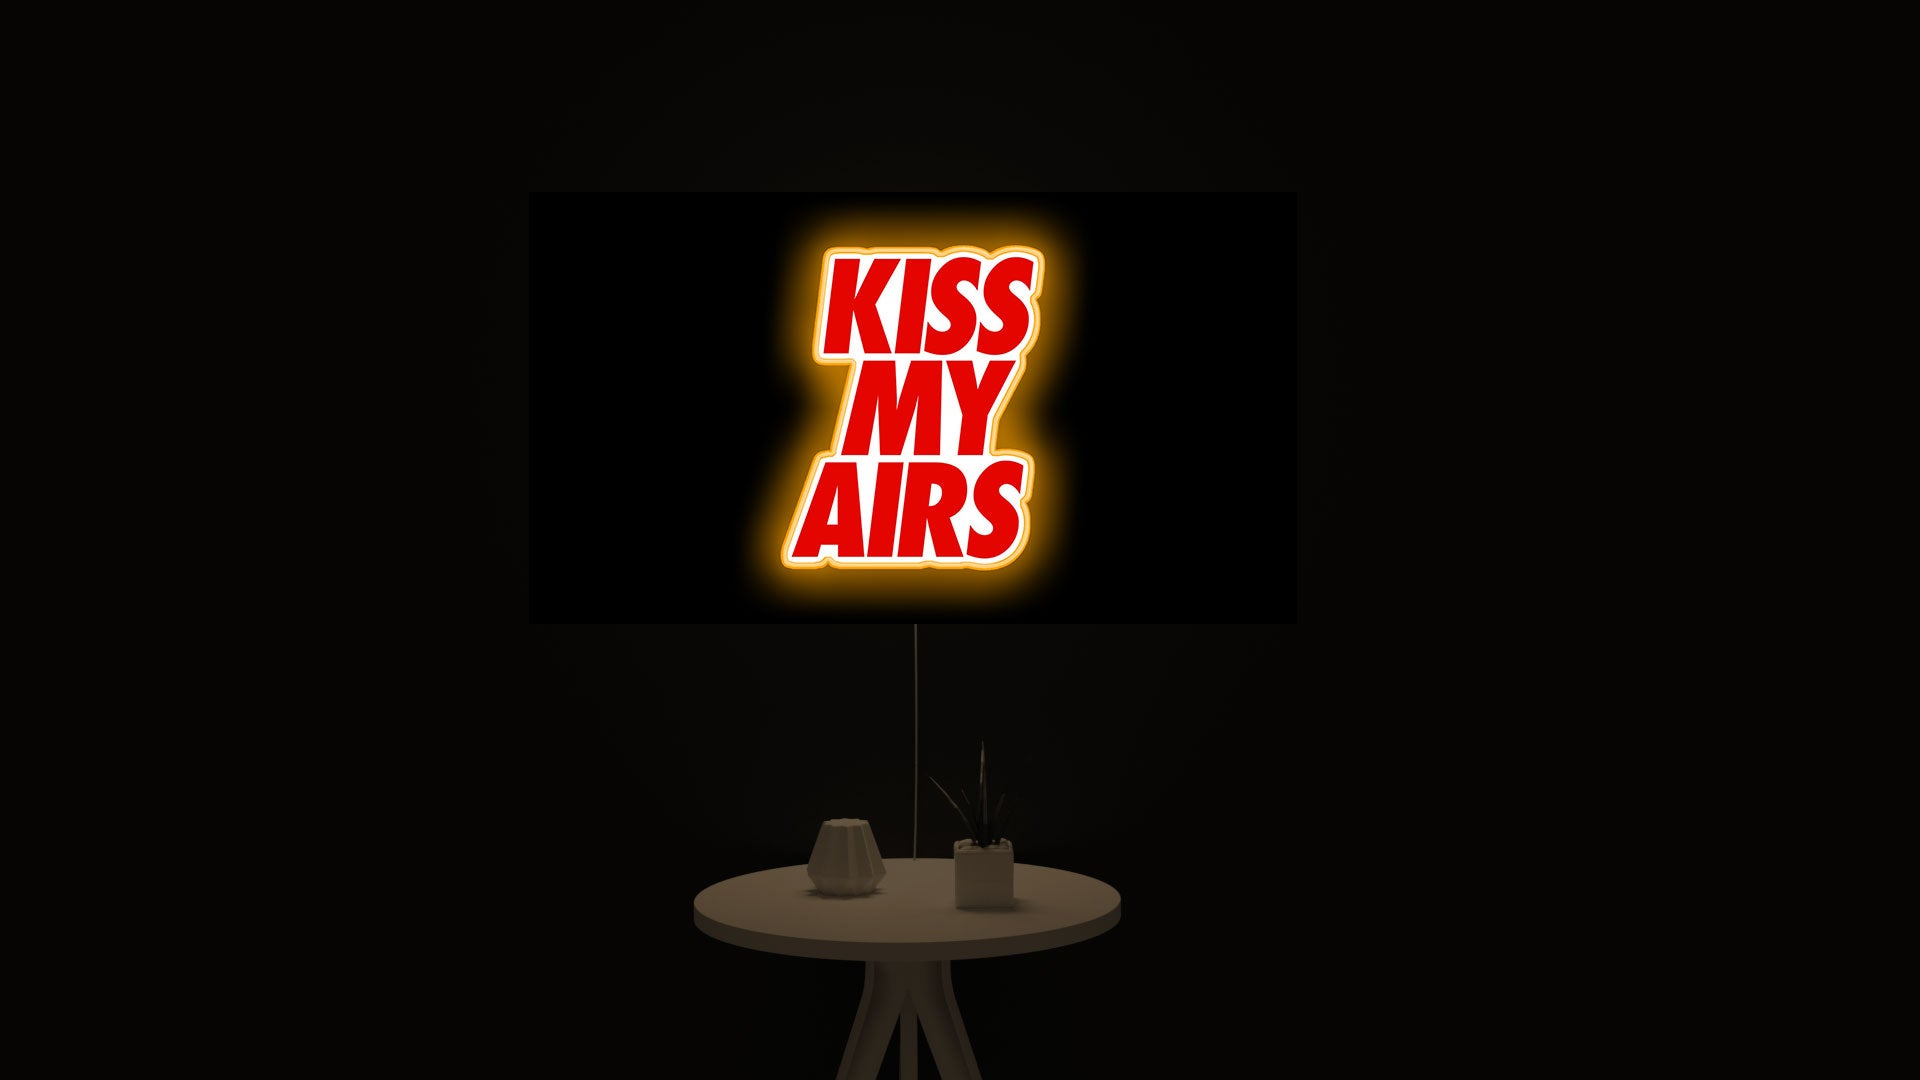 """Kiss My Airs """"BRED"""" led light sign"""